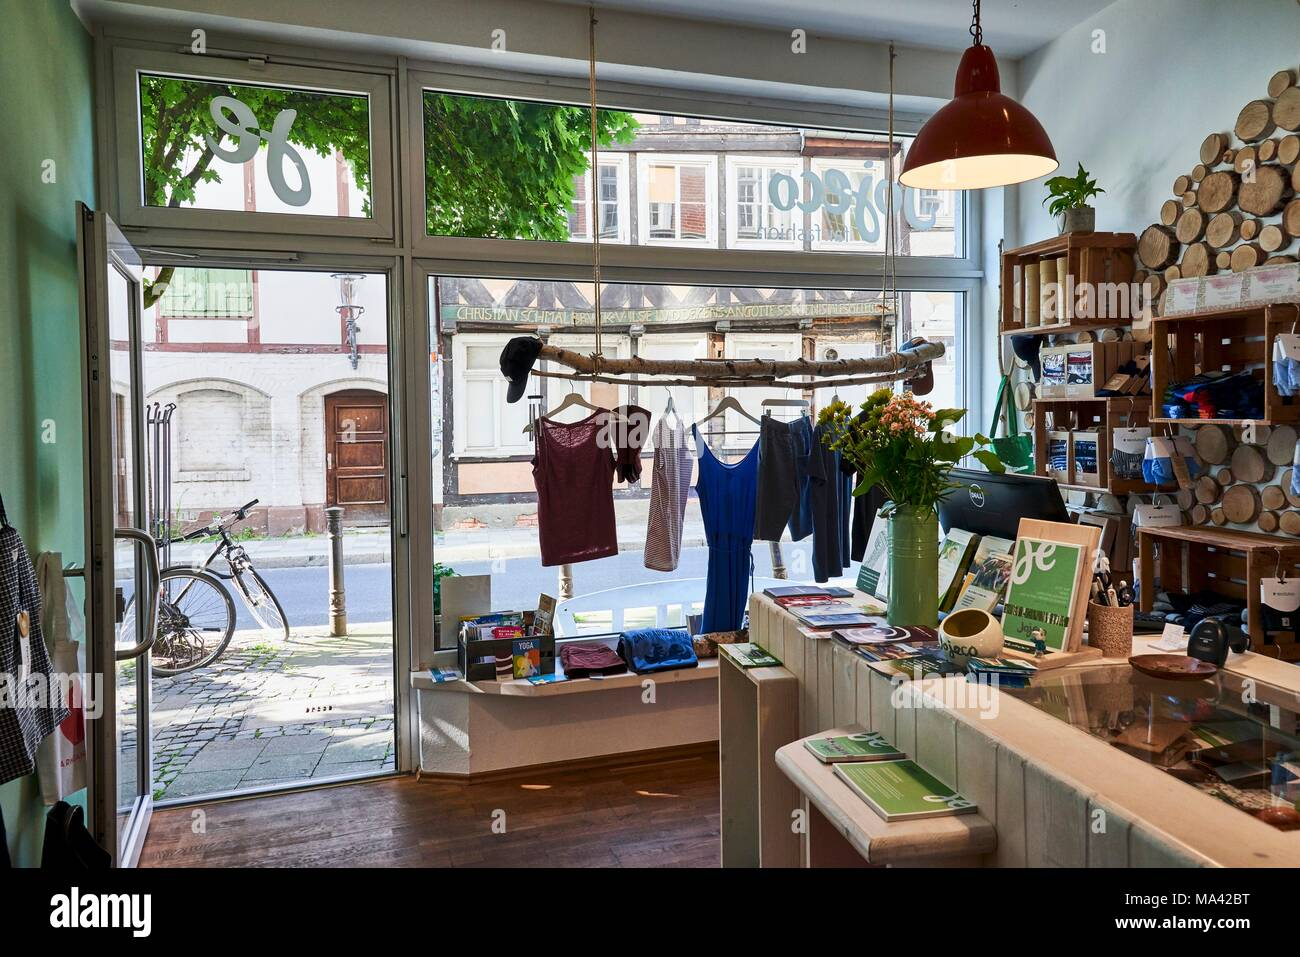 Braunschweig Outlet Jojeco A Shop Selling Fair Trade Fashion In The Magni Quarter Of